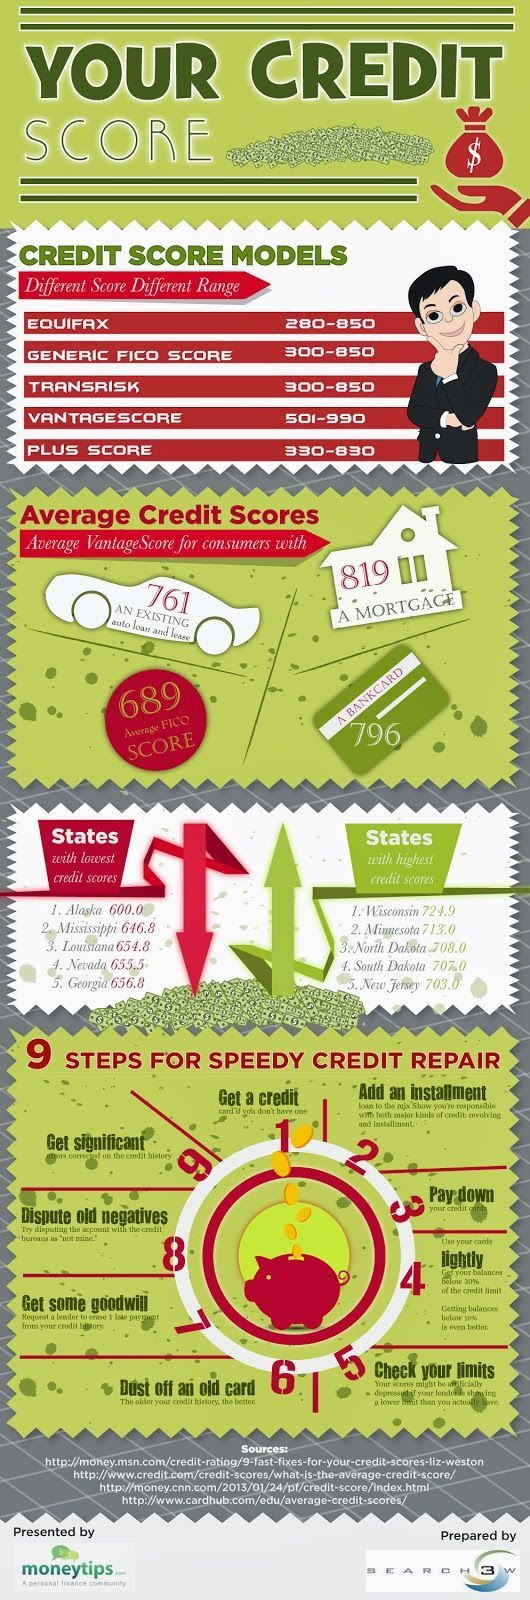 This infographic will help people improve their credit scores. This will be achieved by giving information about different types of credit scores models and giving tips to improve credit ratings.